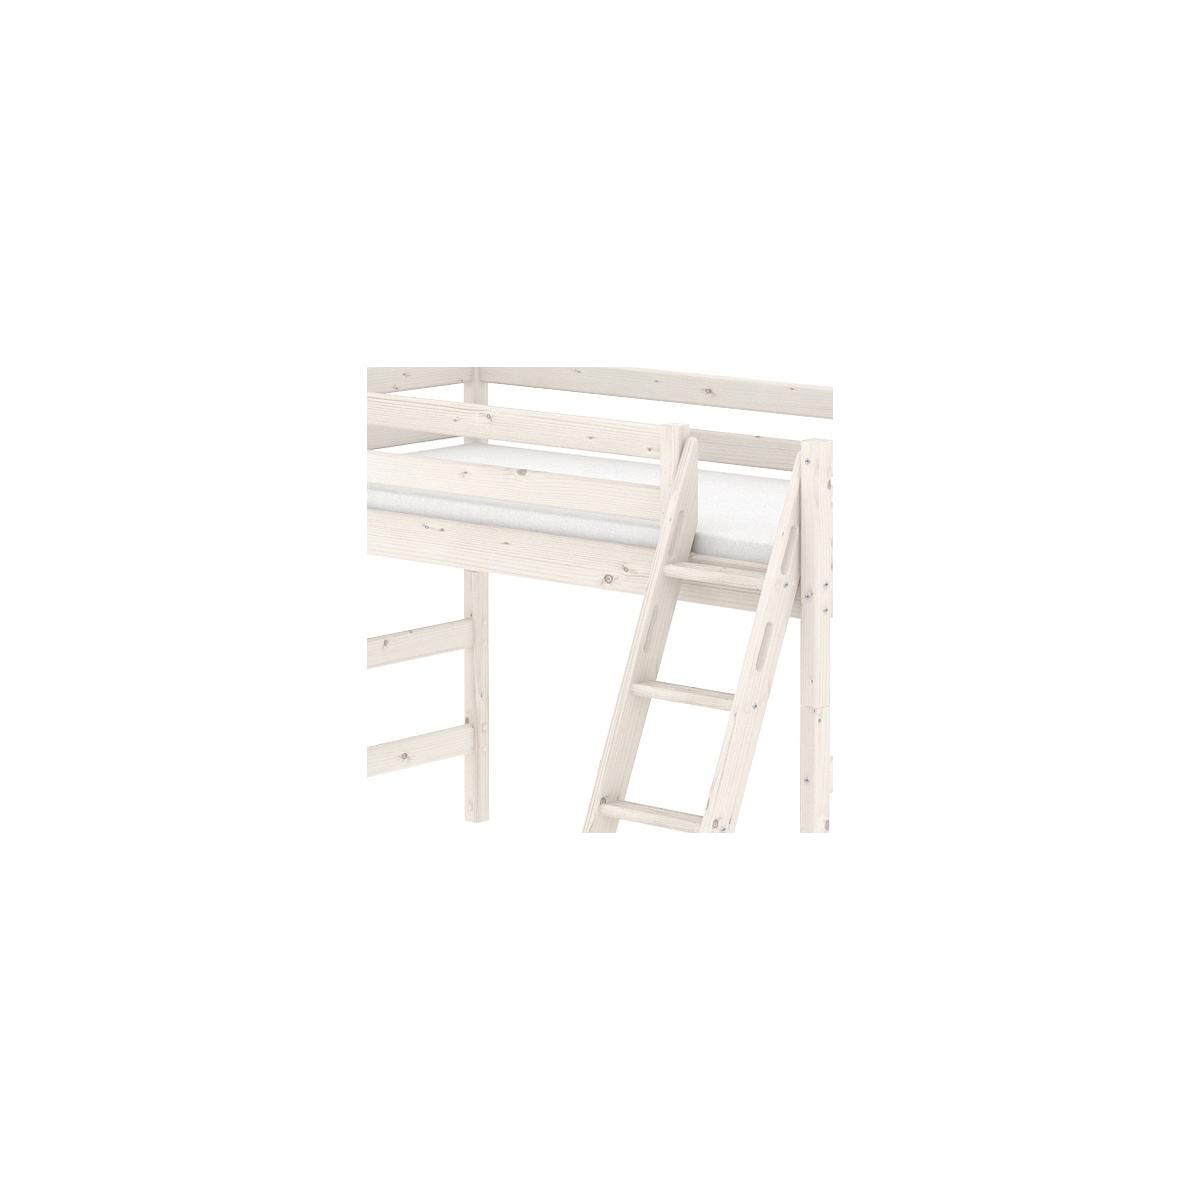 Cama semi alta 90x190 CLASSIC Flexa escalera inclinada blanco cal